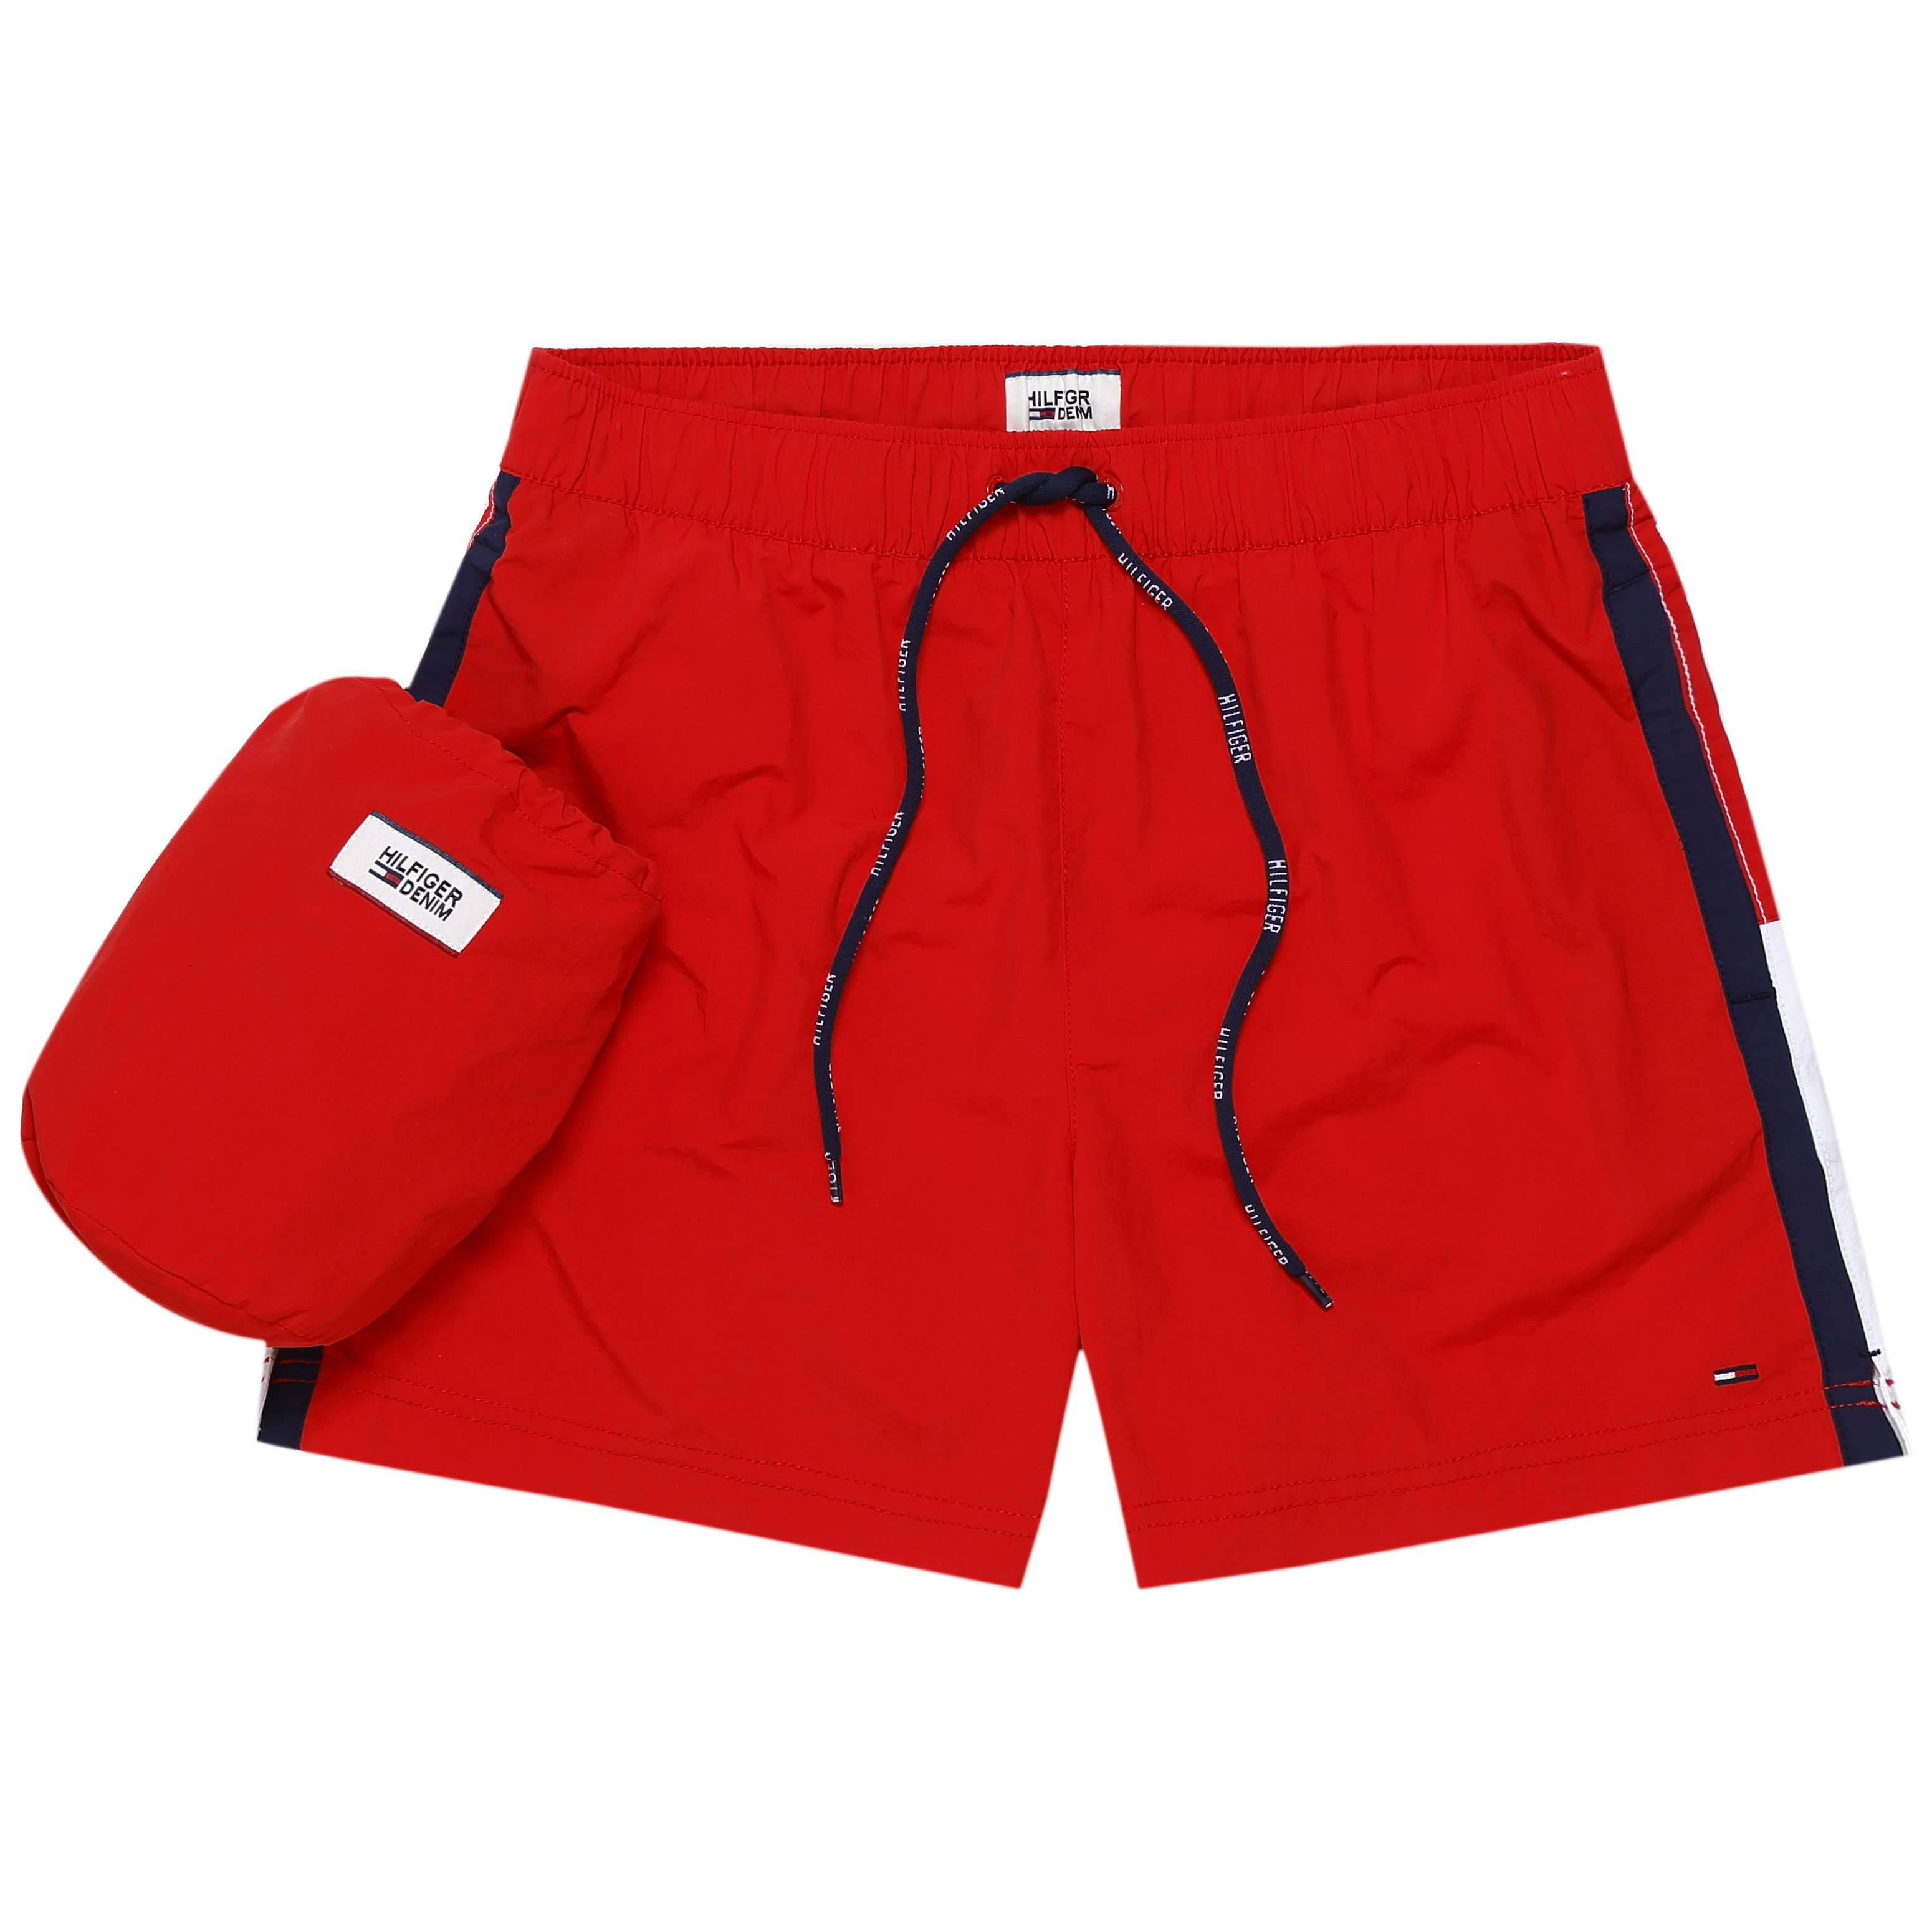 Men's Tommy Hilfiger basic flag swim shorts, Red